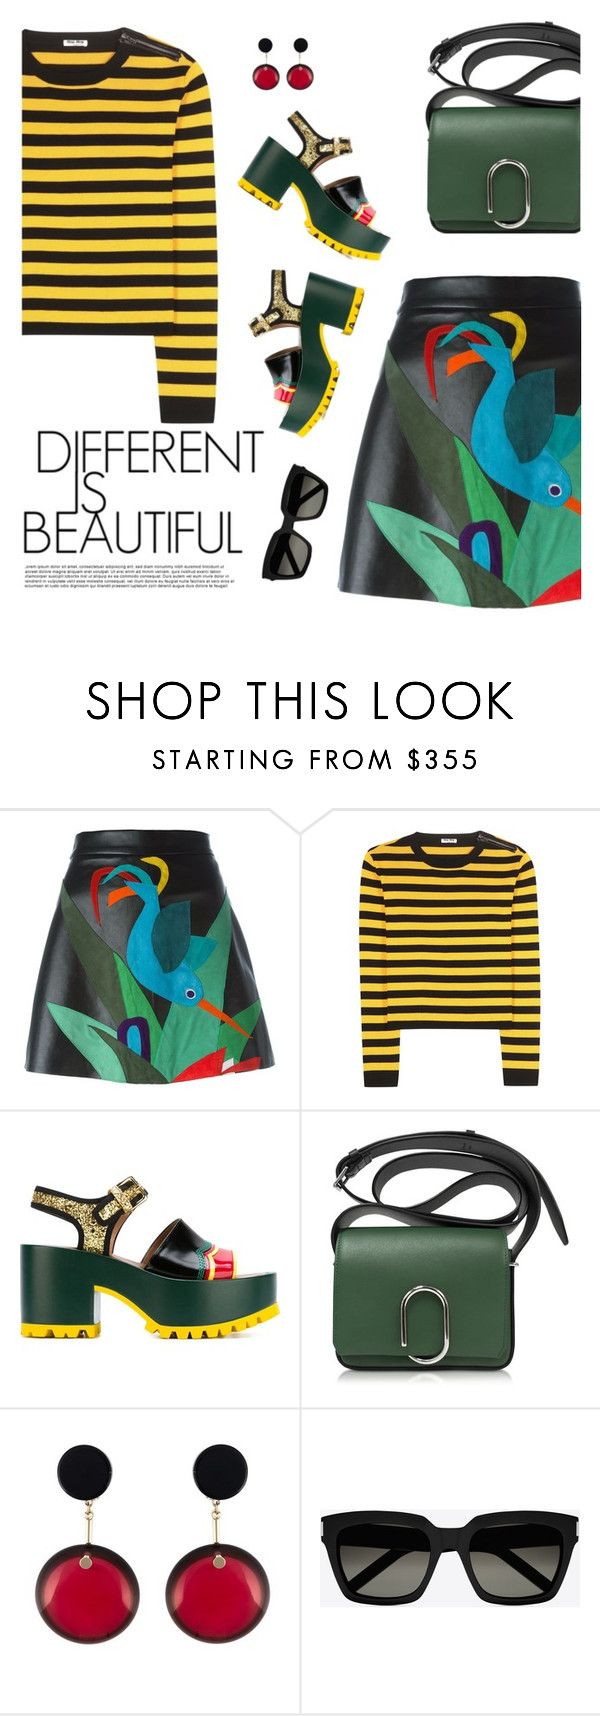 """""""Different is Beautiful"""" by dira-purwanto ❤ liked on Polyvore featuring P.A.R.O.S.H., Miu Miu, Marni, 3.1 Phillip Lim and Yves Saint Laurent"""